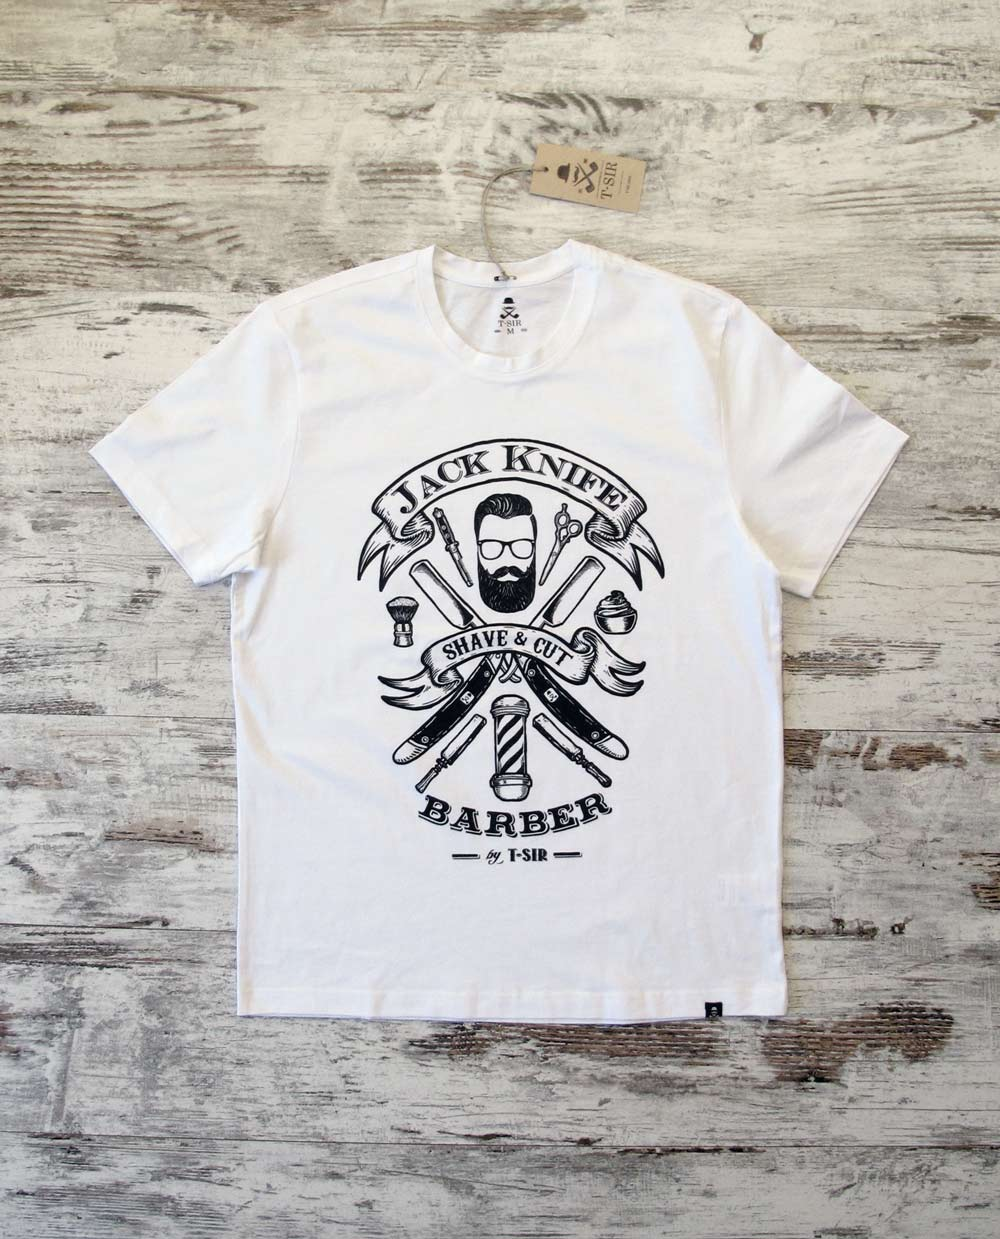 Jack Knife Barber tee